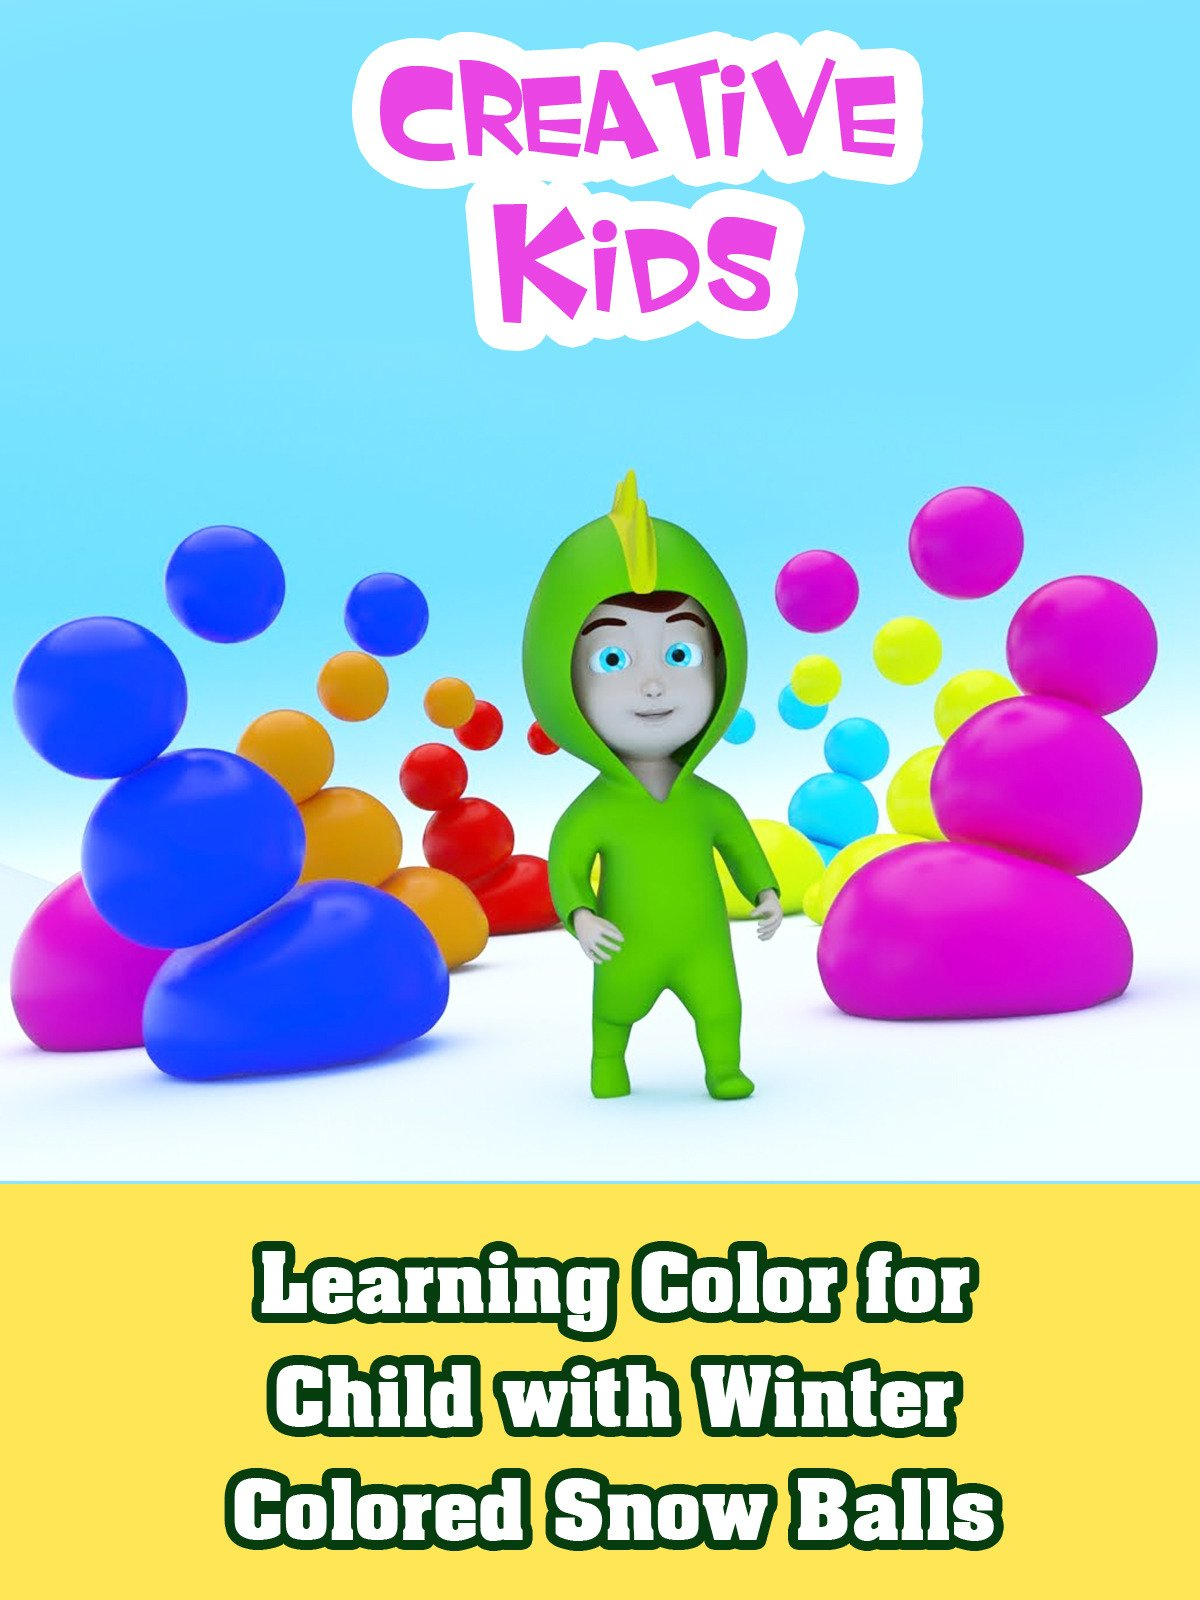 Learning Color for Child with Winter Colored Snow Balls